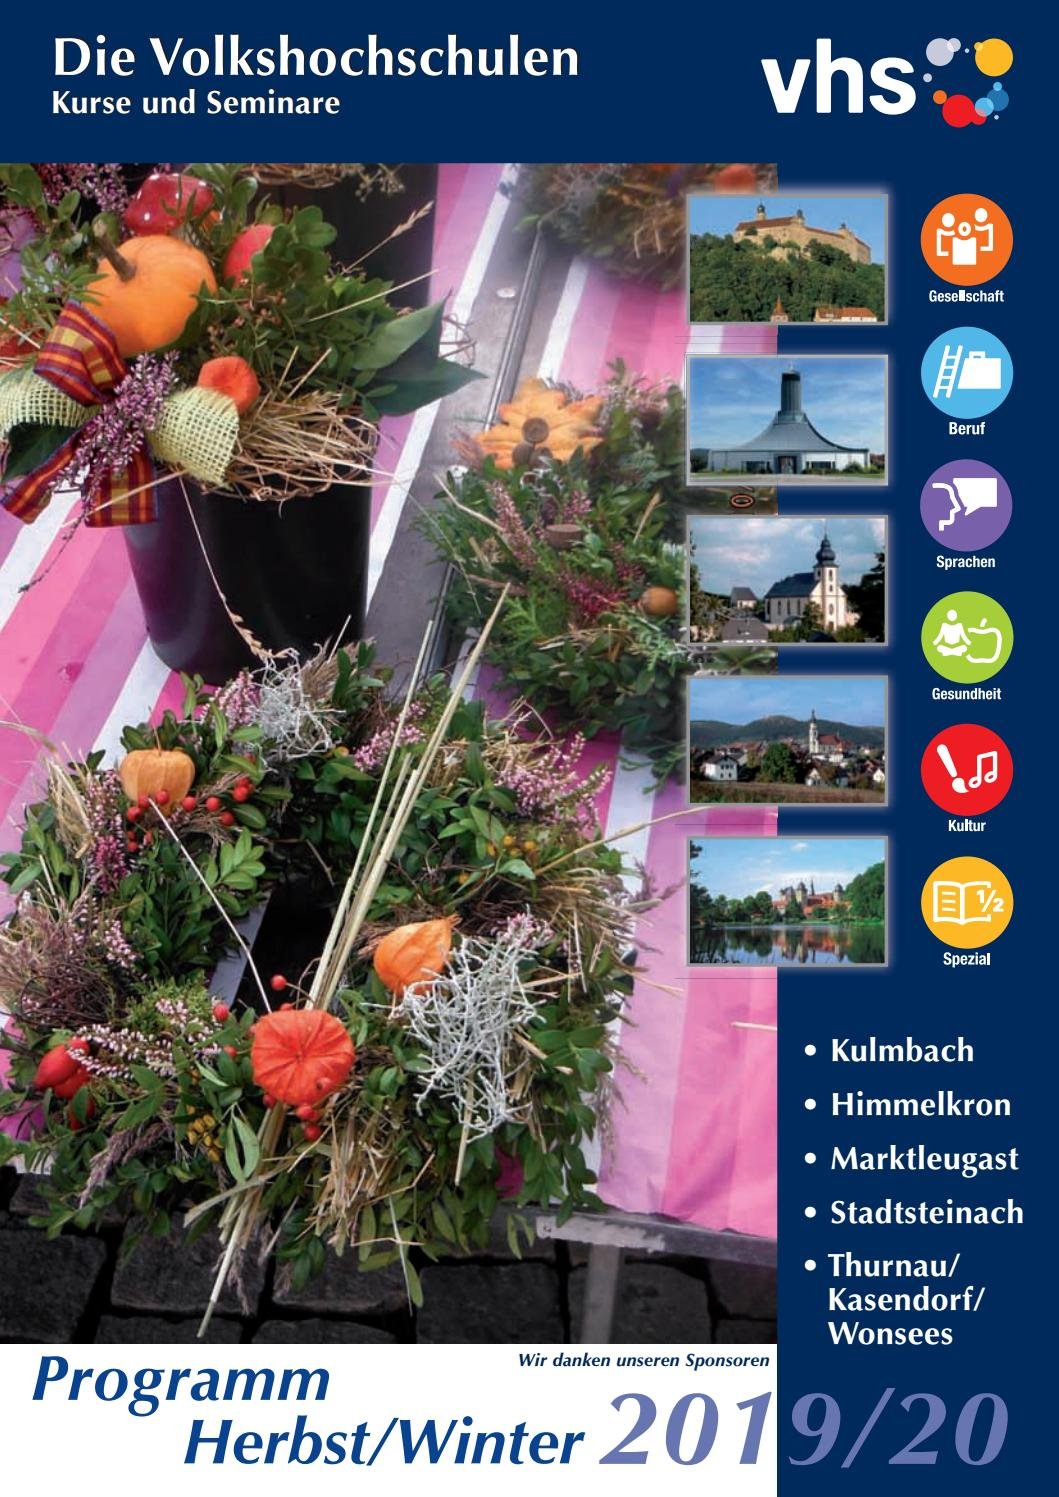 VHS Kulmbach Herbst Winter 2019 by Stadt Kulmbach issuu